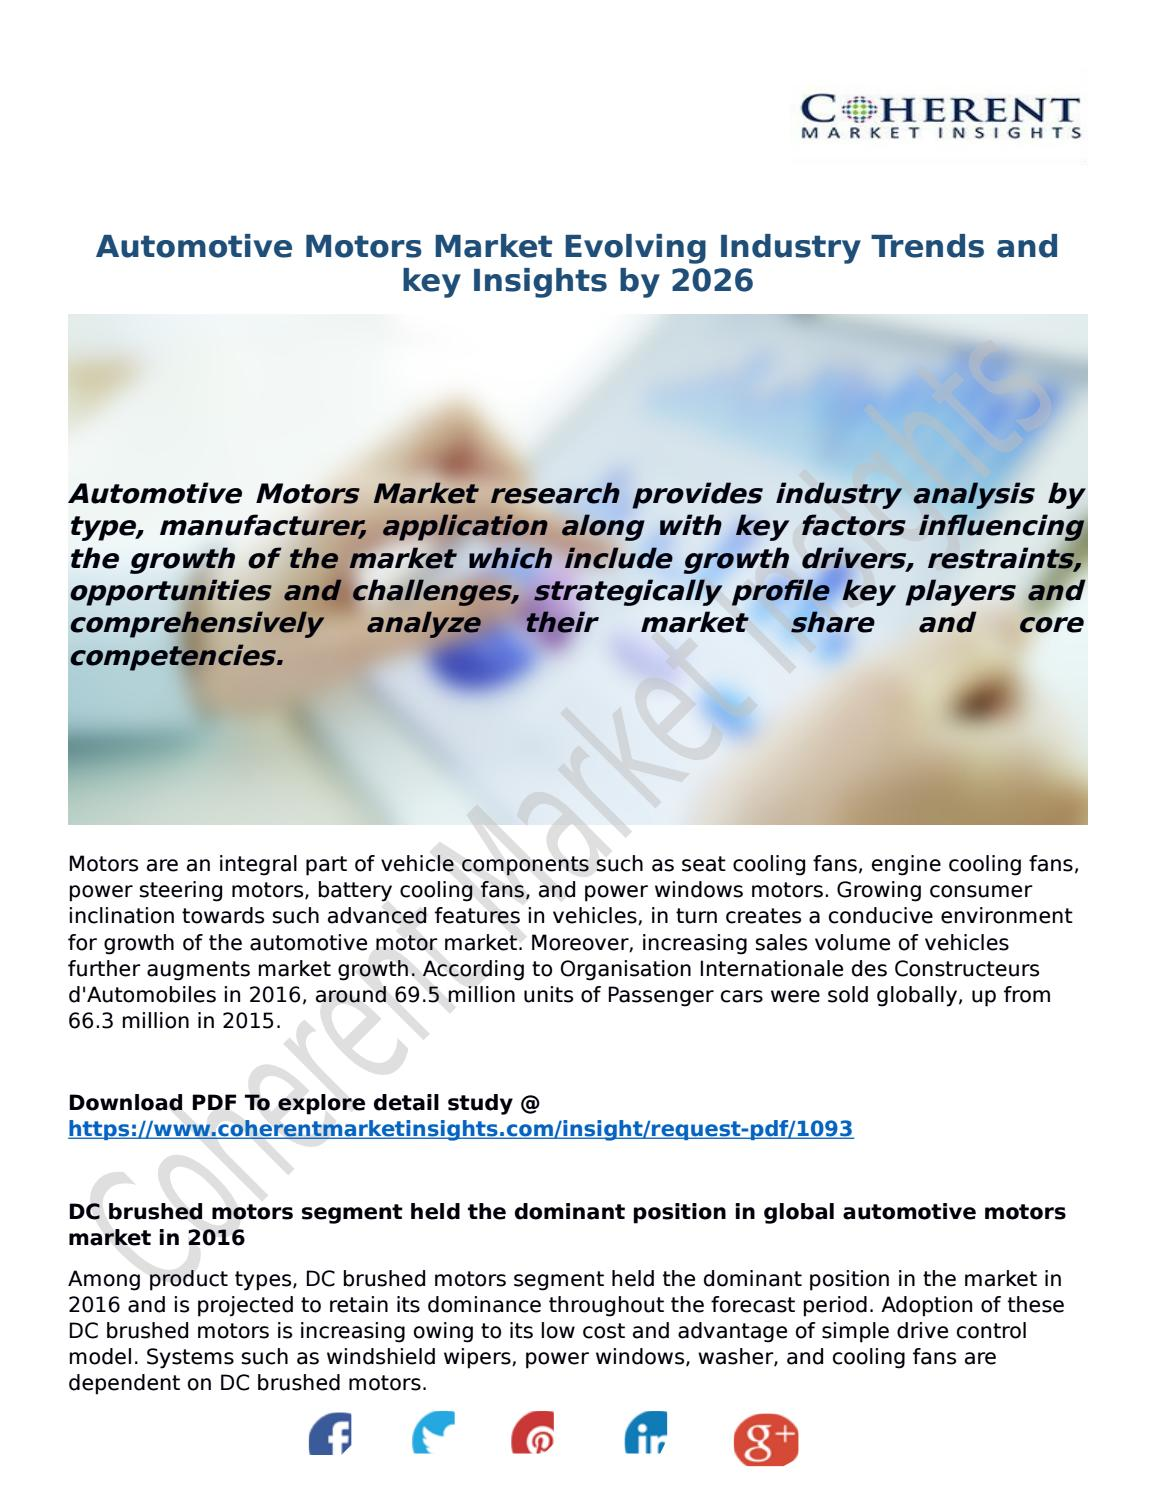 Automotive Motors Market Evolving Industry Trends and key Insights